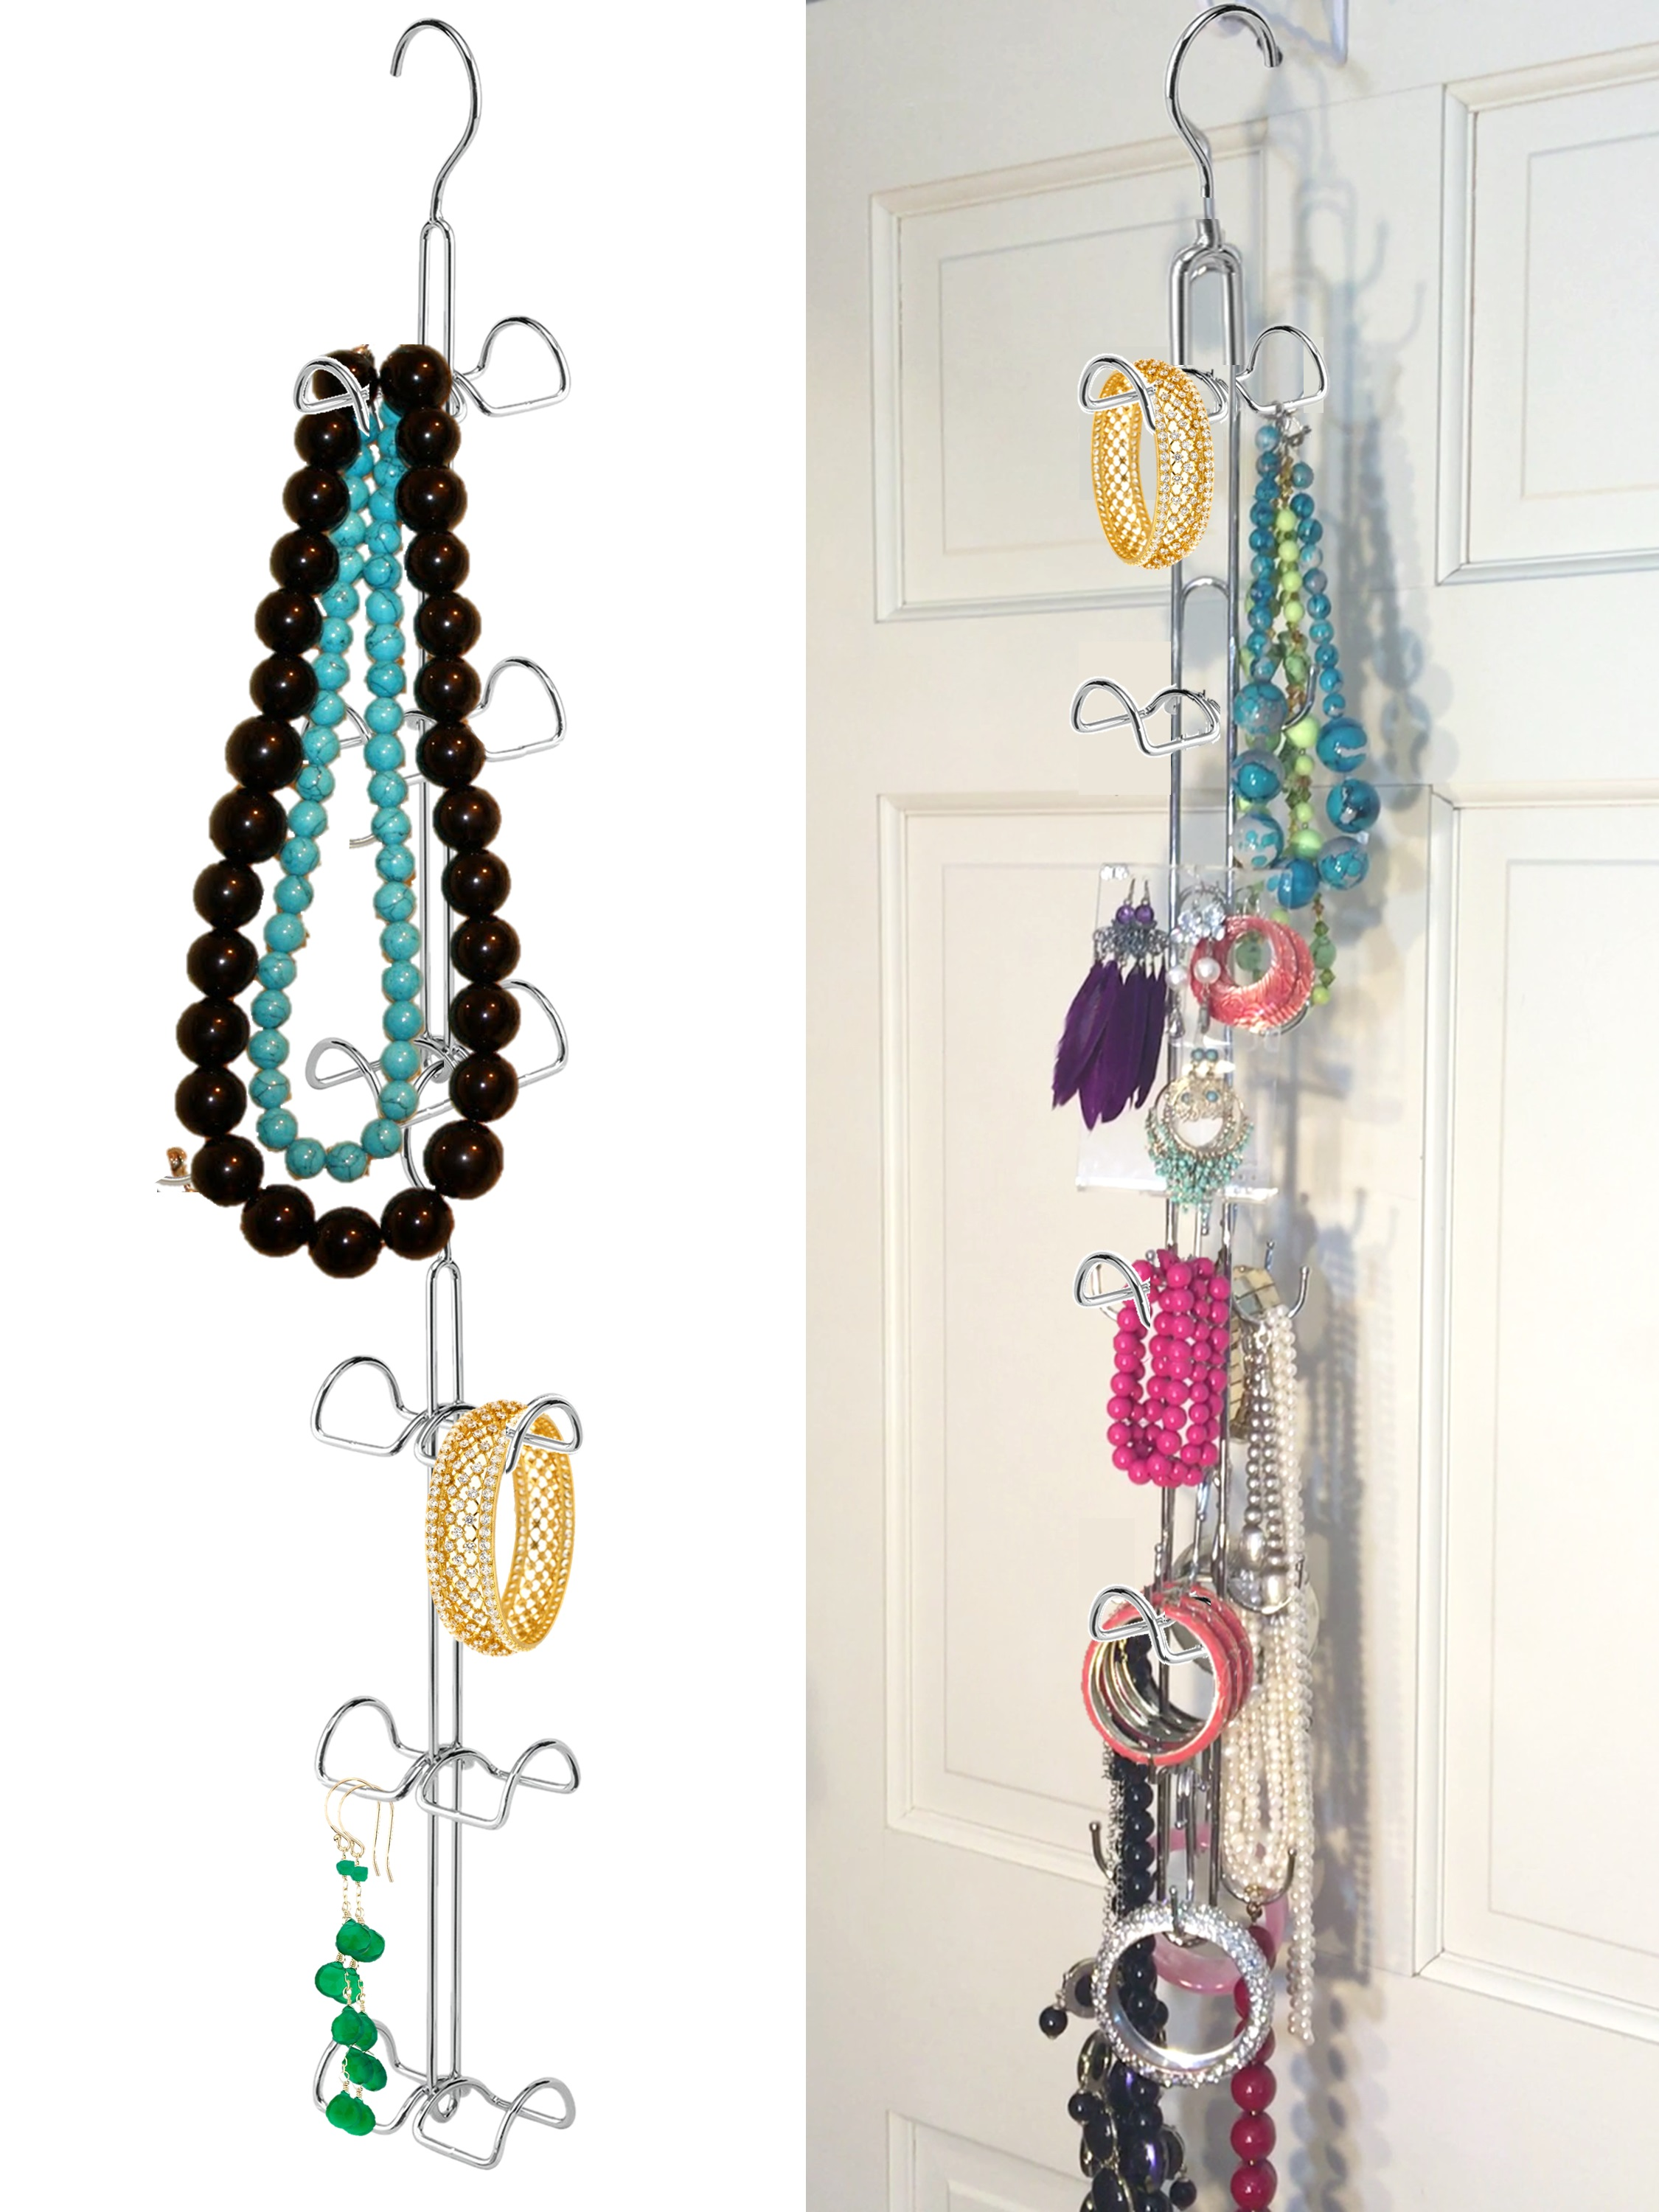 HANGING JEWELRY Organizer Over Door Jewelry Storage 360 ROTATING